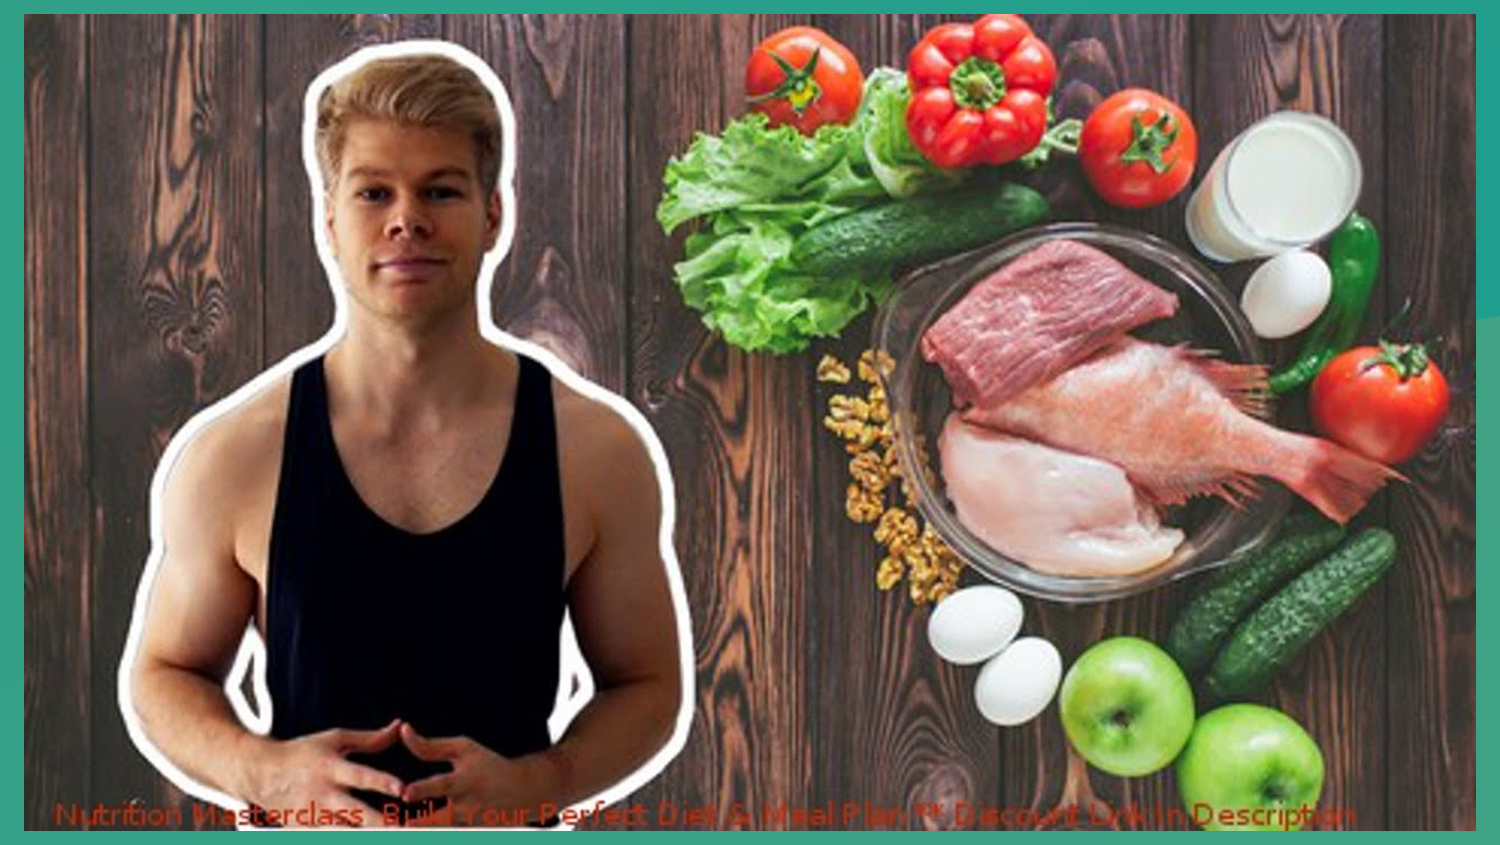 Nutrition Masterclass Build Your Perfect Diet & Meal Plan udemy